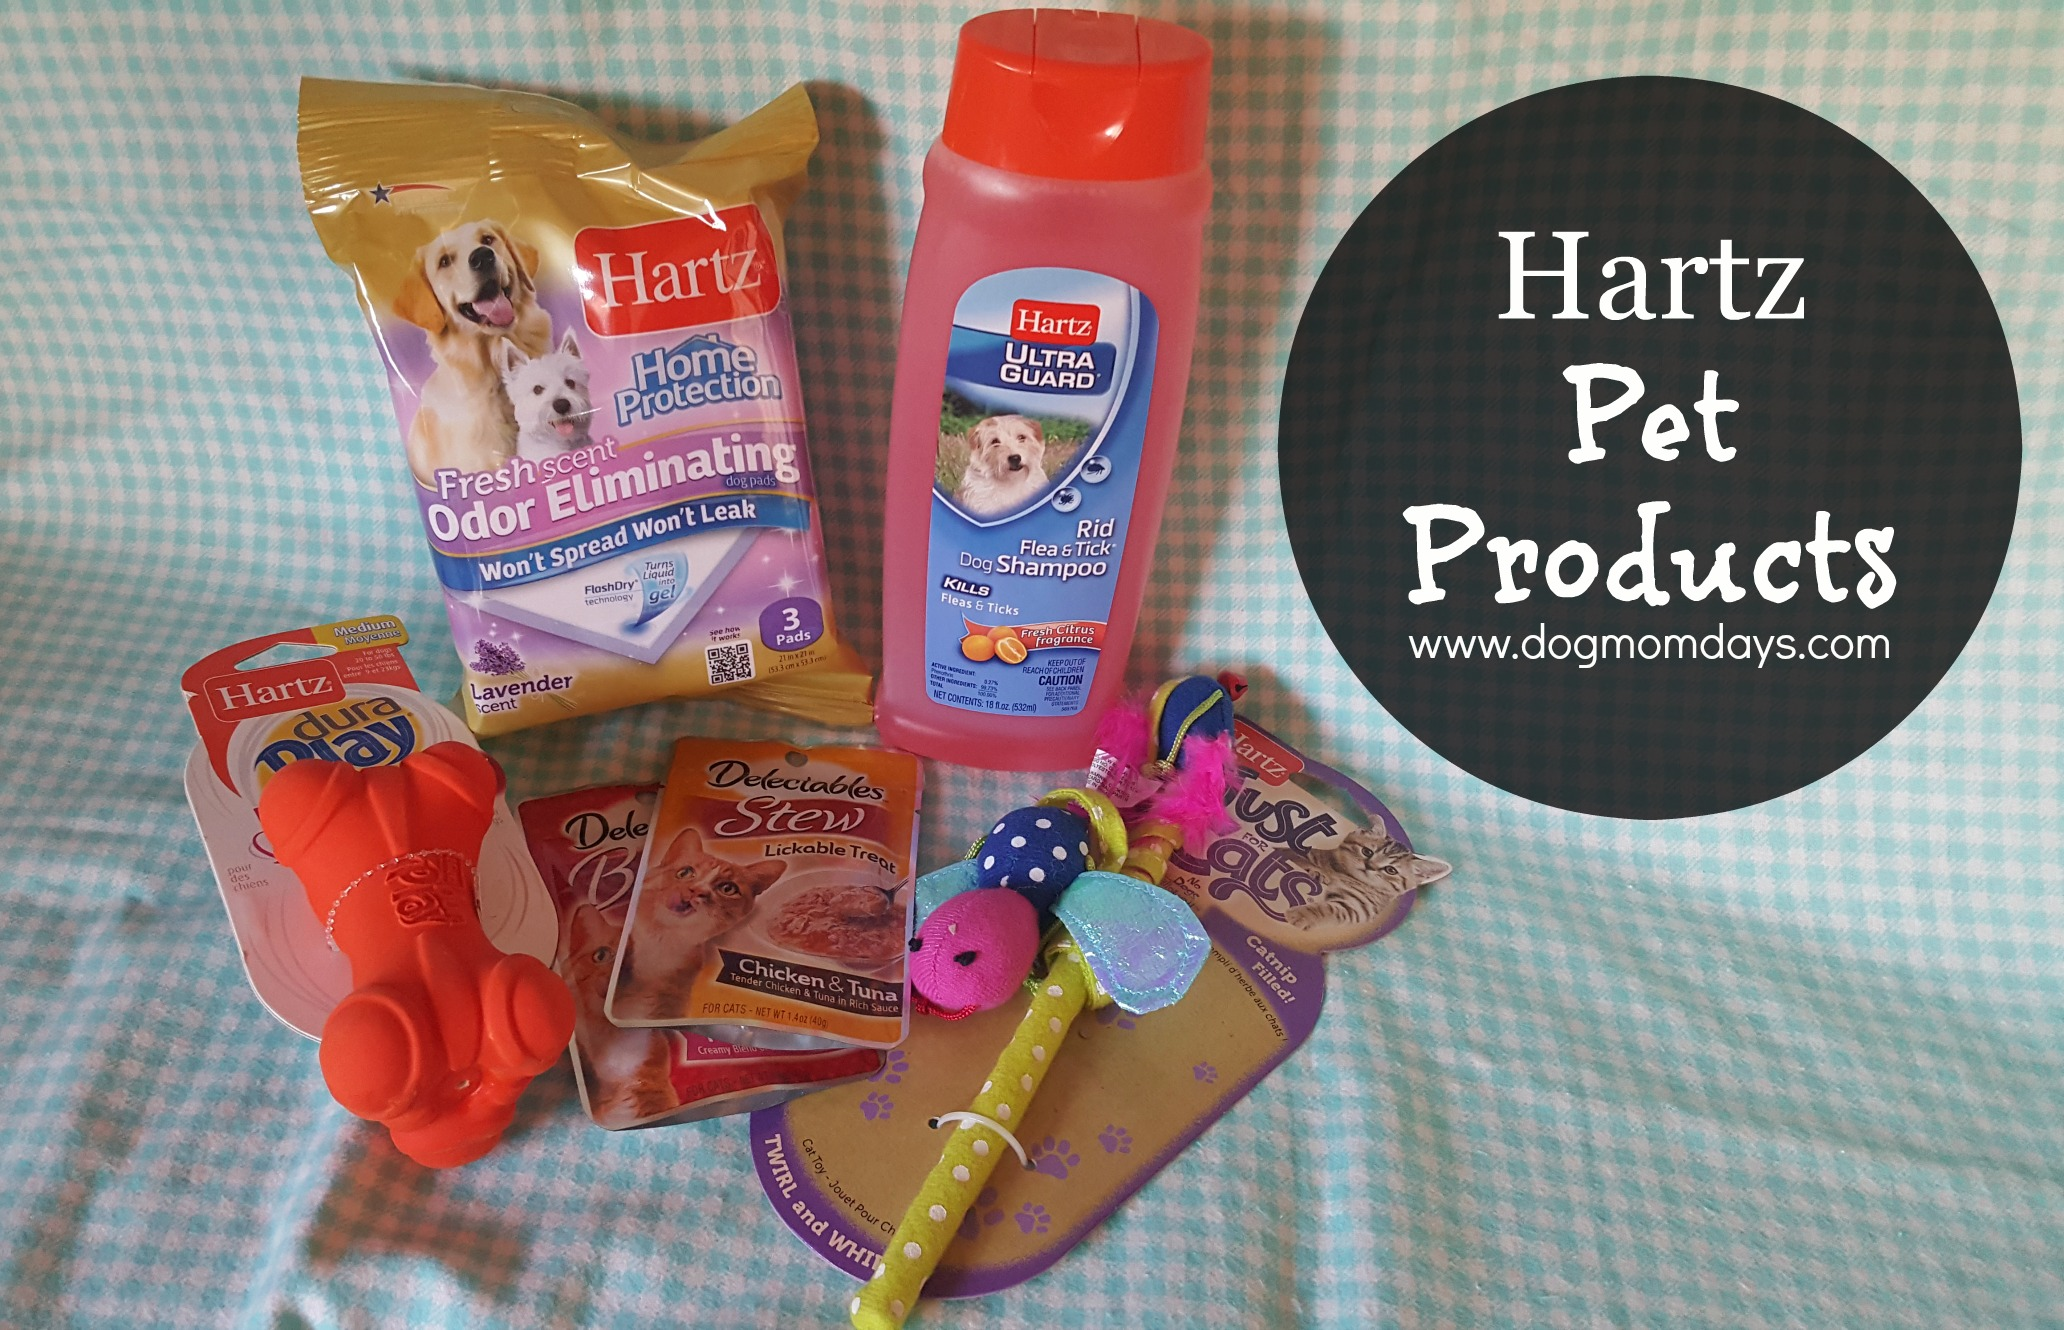 Hartz Pet Products